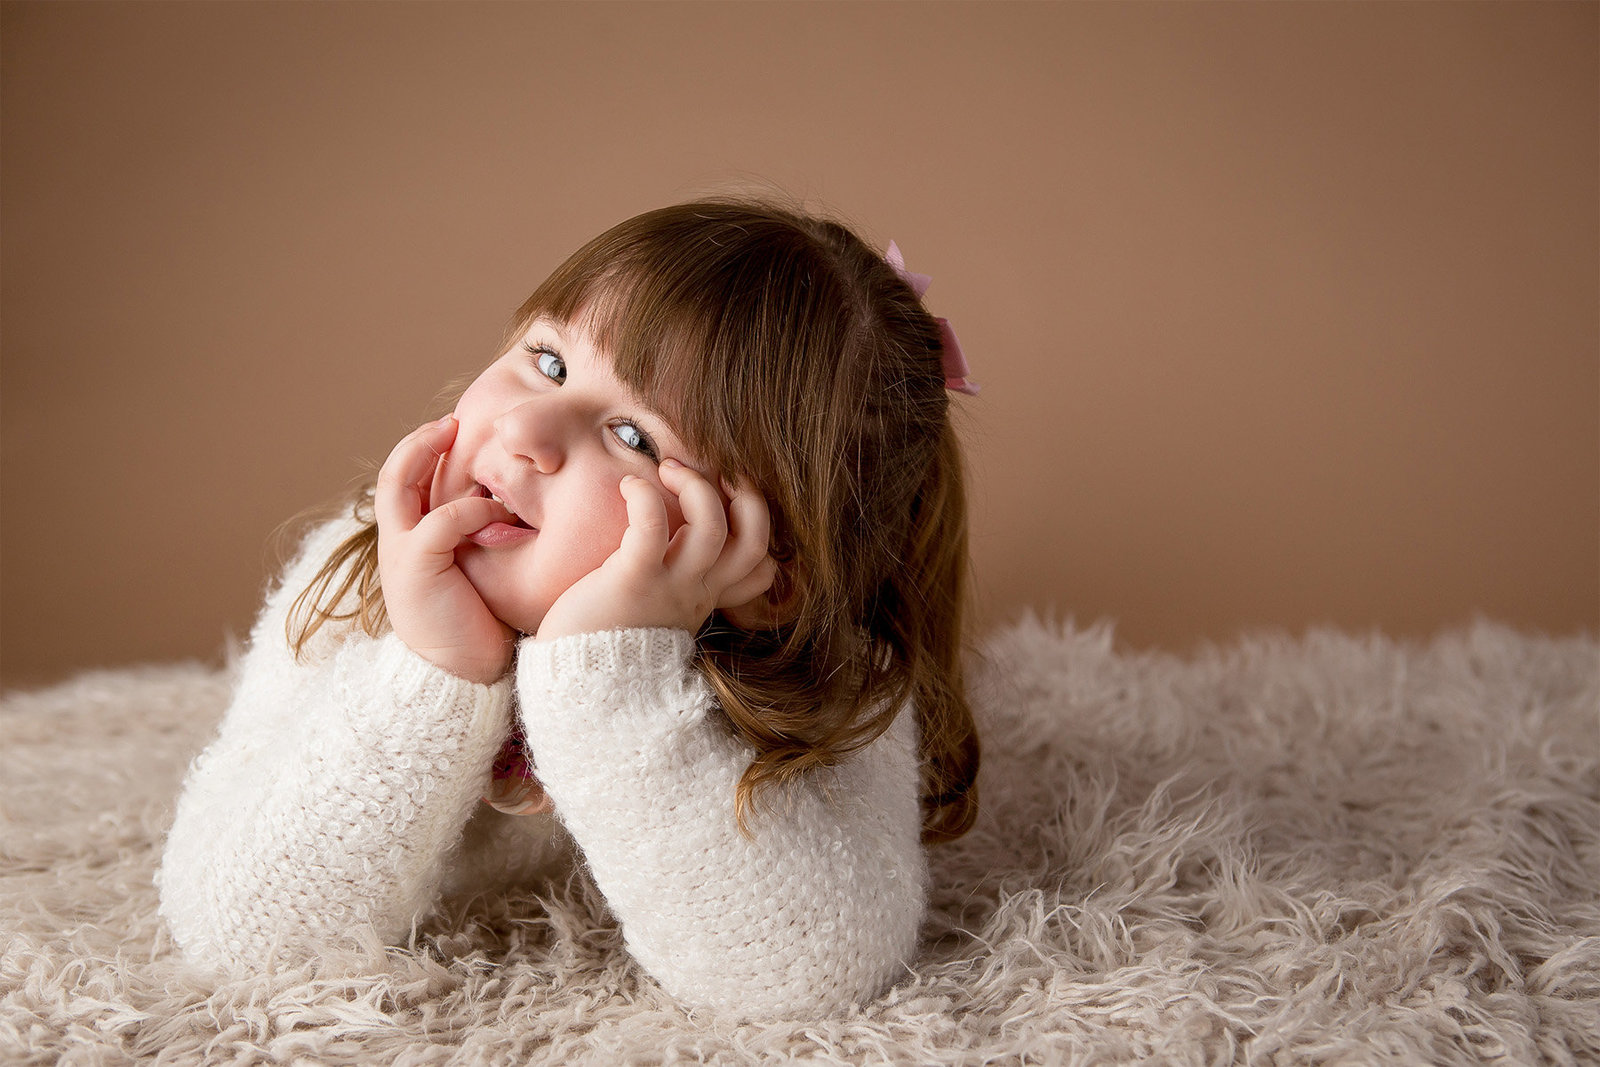 Cute kids  portrait photography by Hudson Valley children's photographer in Cornwall NY photo studio